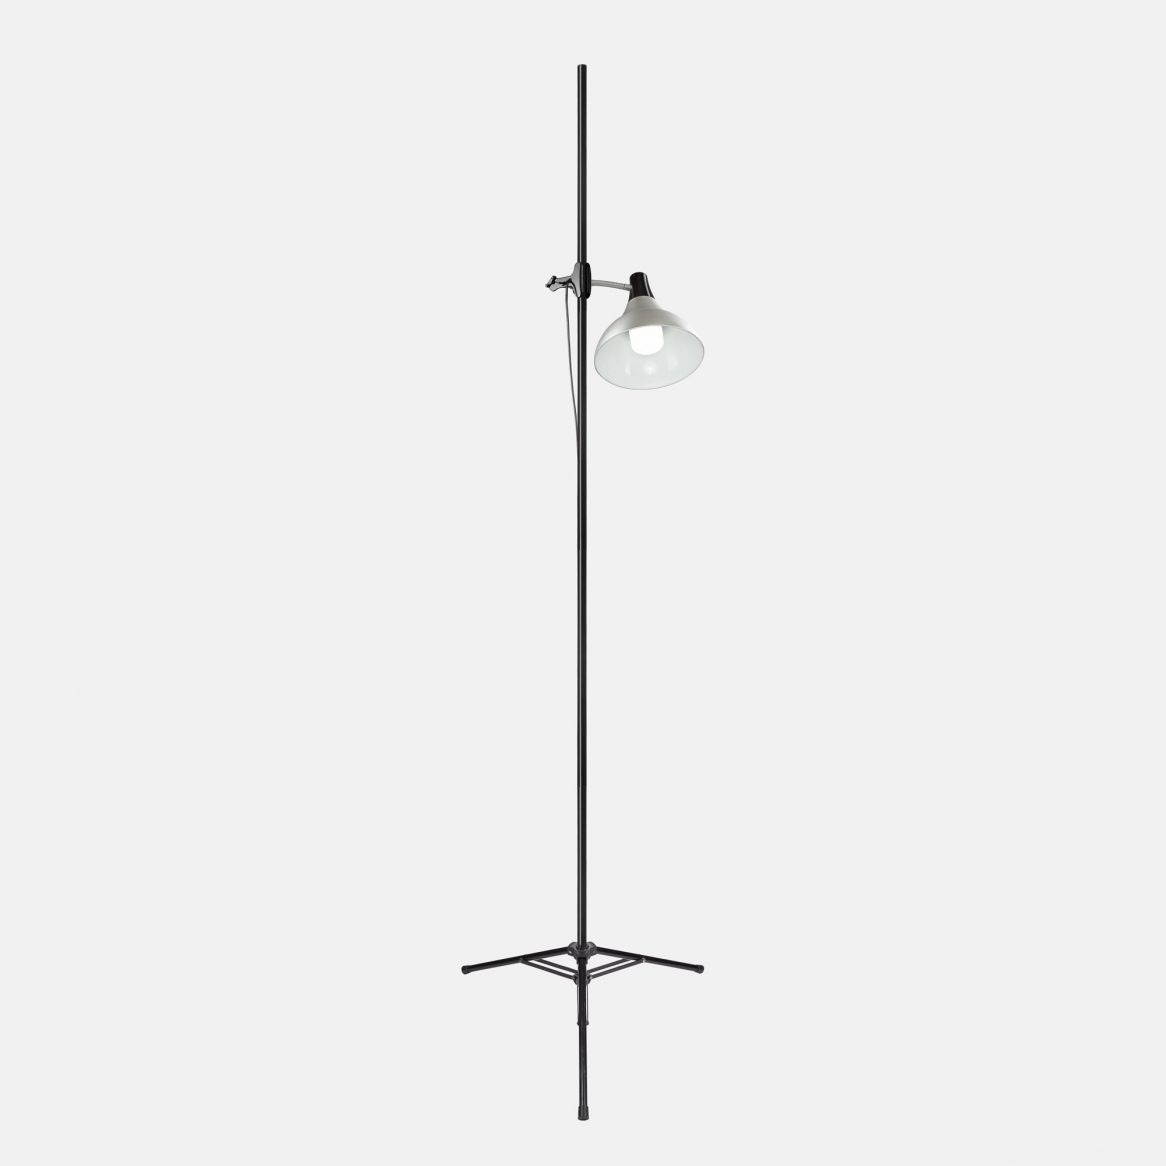 Artist Studio lamp with stand